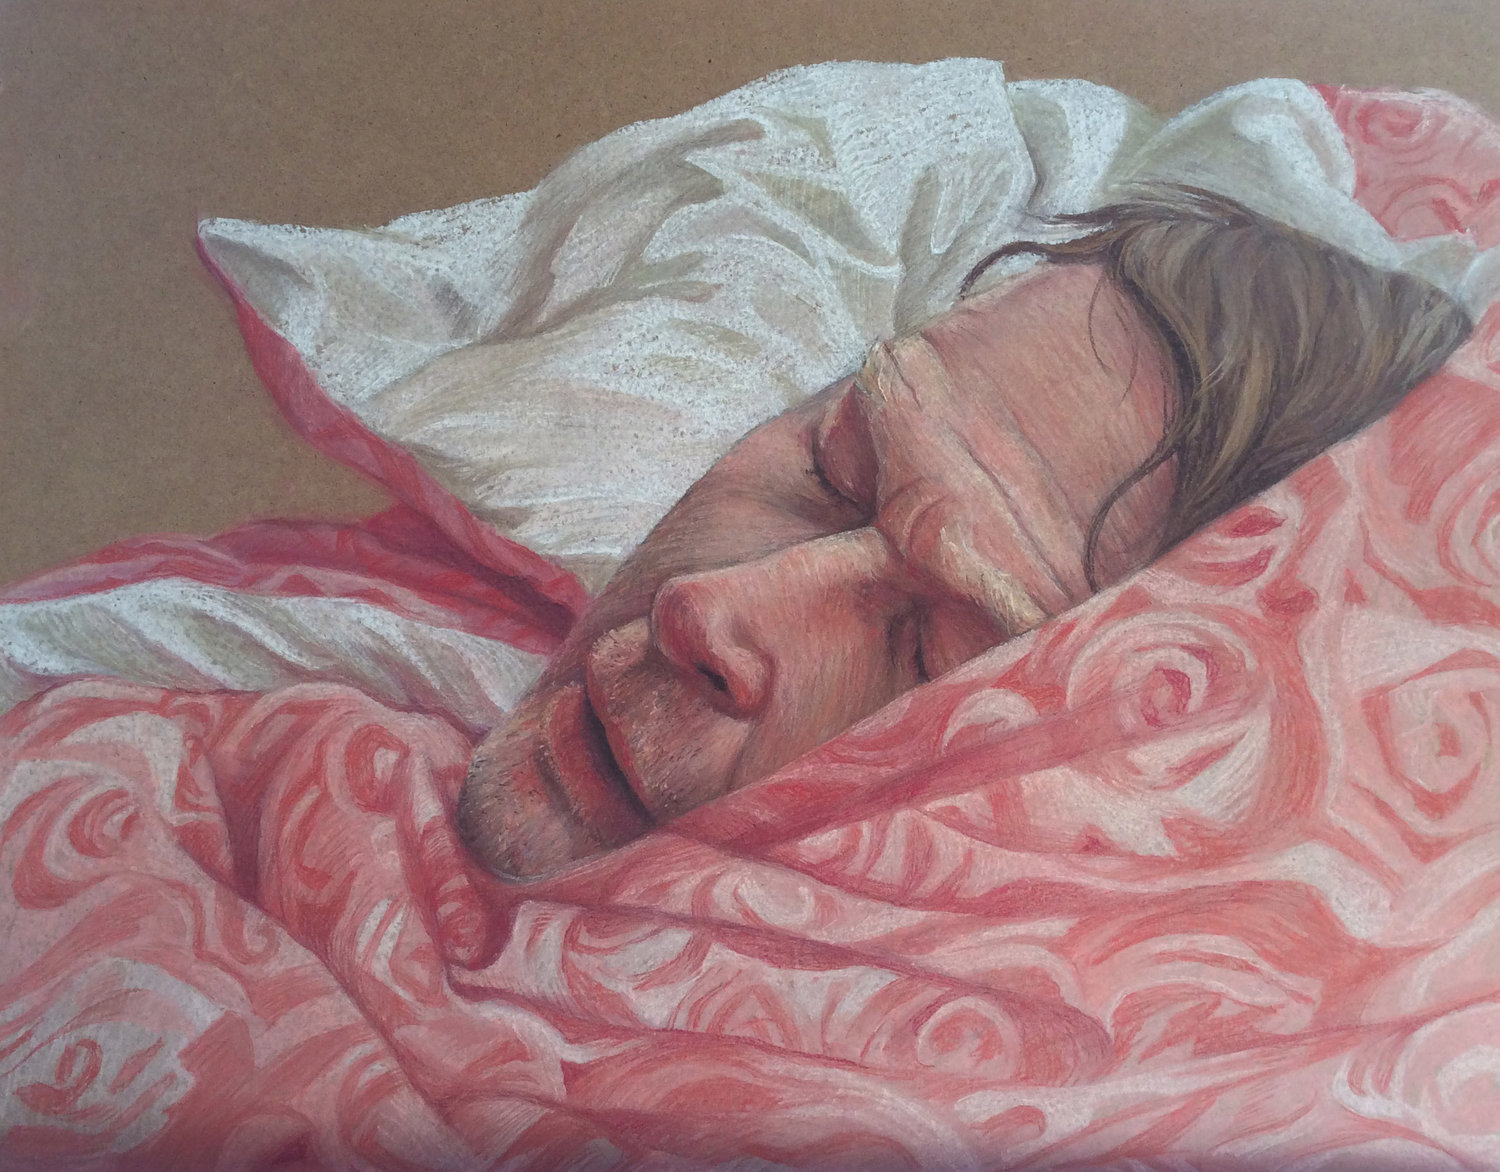 'After Nightshift', Merlyn Harvey, Rembrandt soft pastels on board, 40 x 50 cm